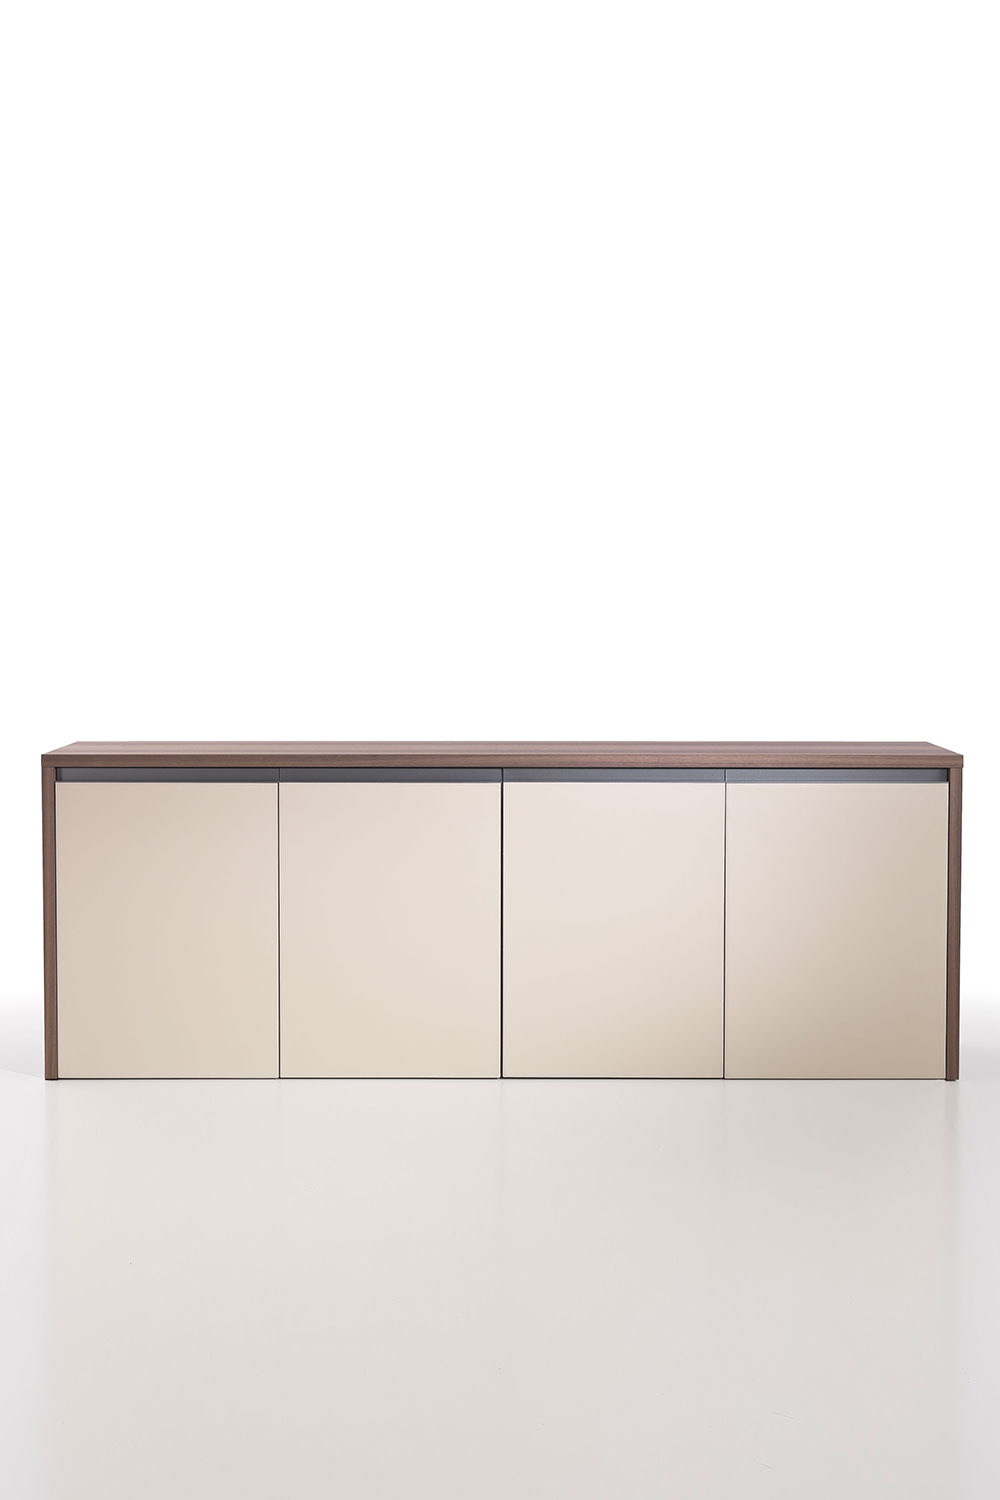 Low Cabinet with Doors Lovely Kefa 4 Doors Low Cabinet In Eucalyptus and Saddle Leather